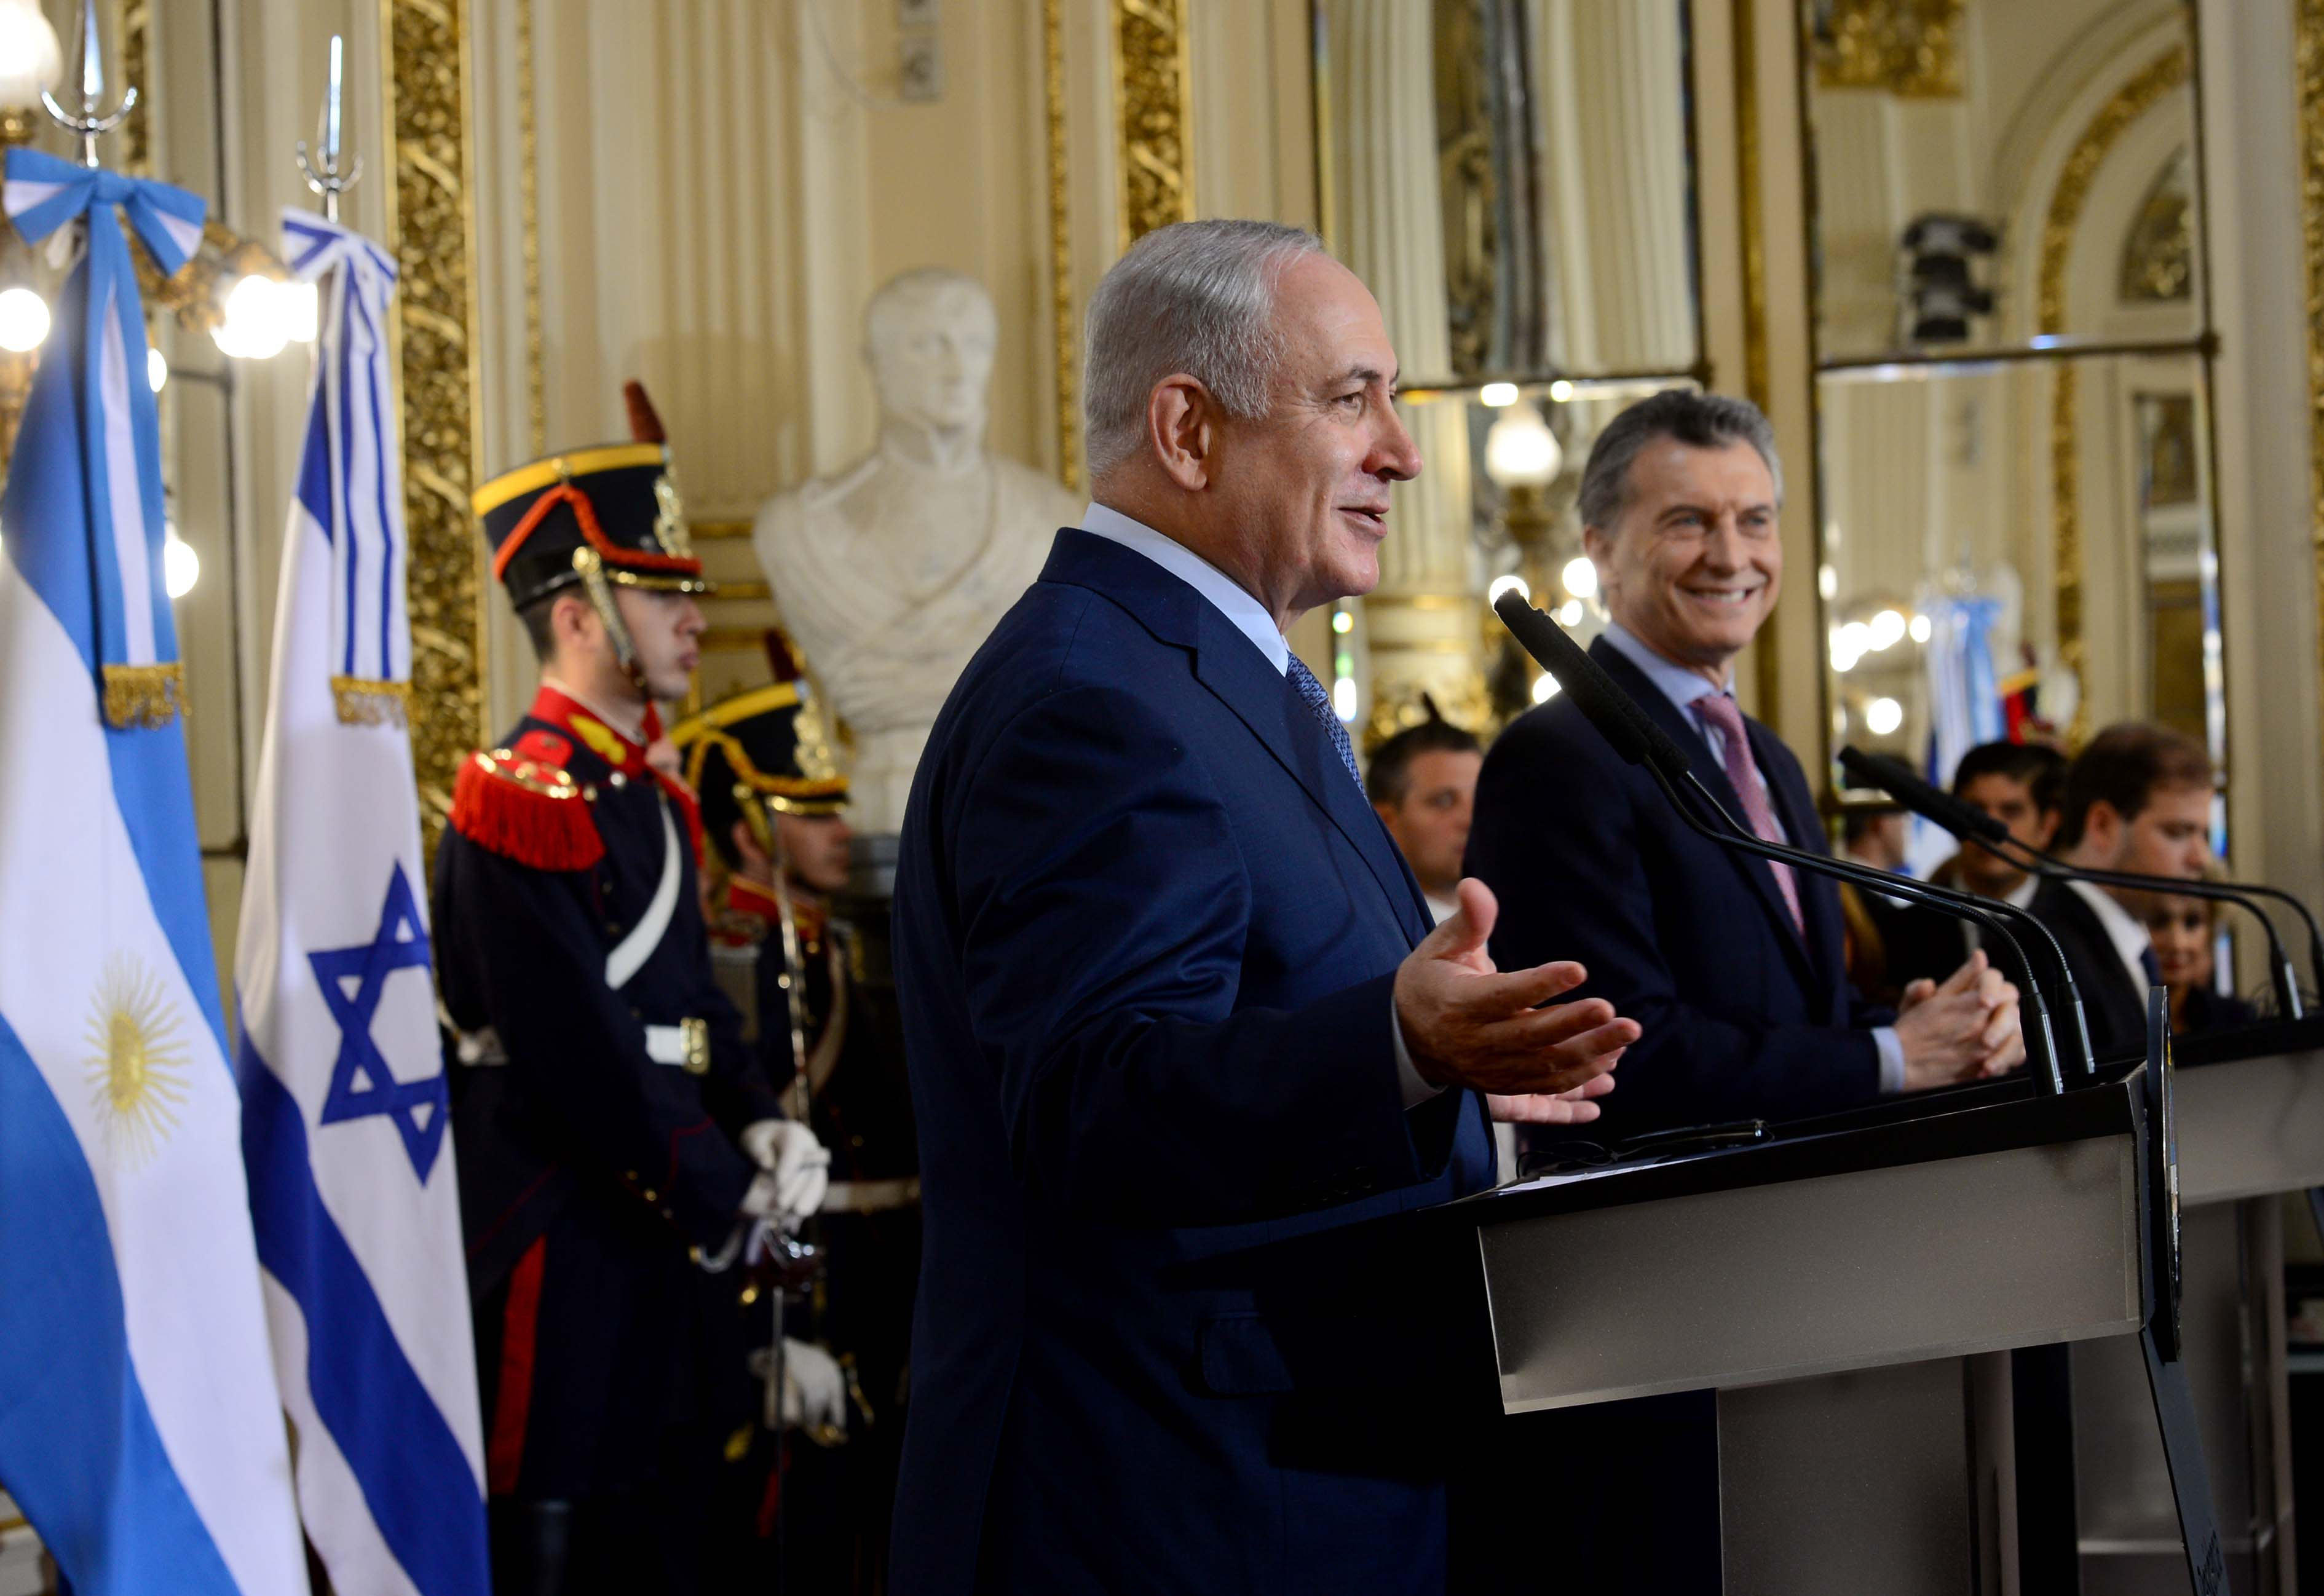 Prime Minister Benjamin Netanyahu speaking at the House of the Argentinian president in Buenos Aires, September 12, 2017. (Avi Ohayon/GPO)